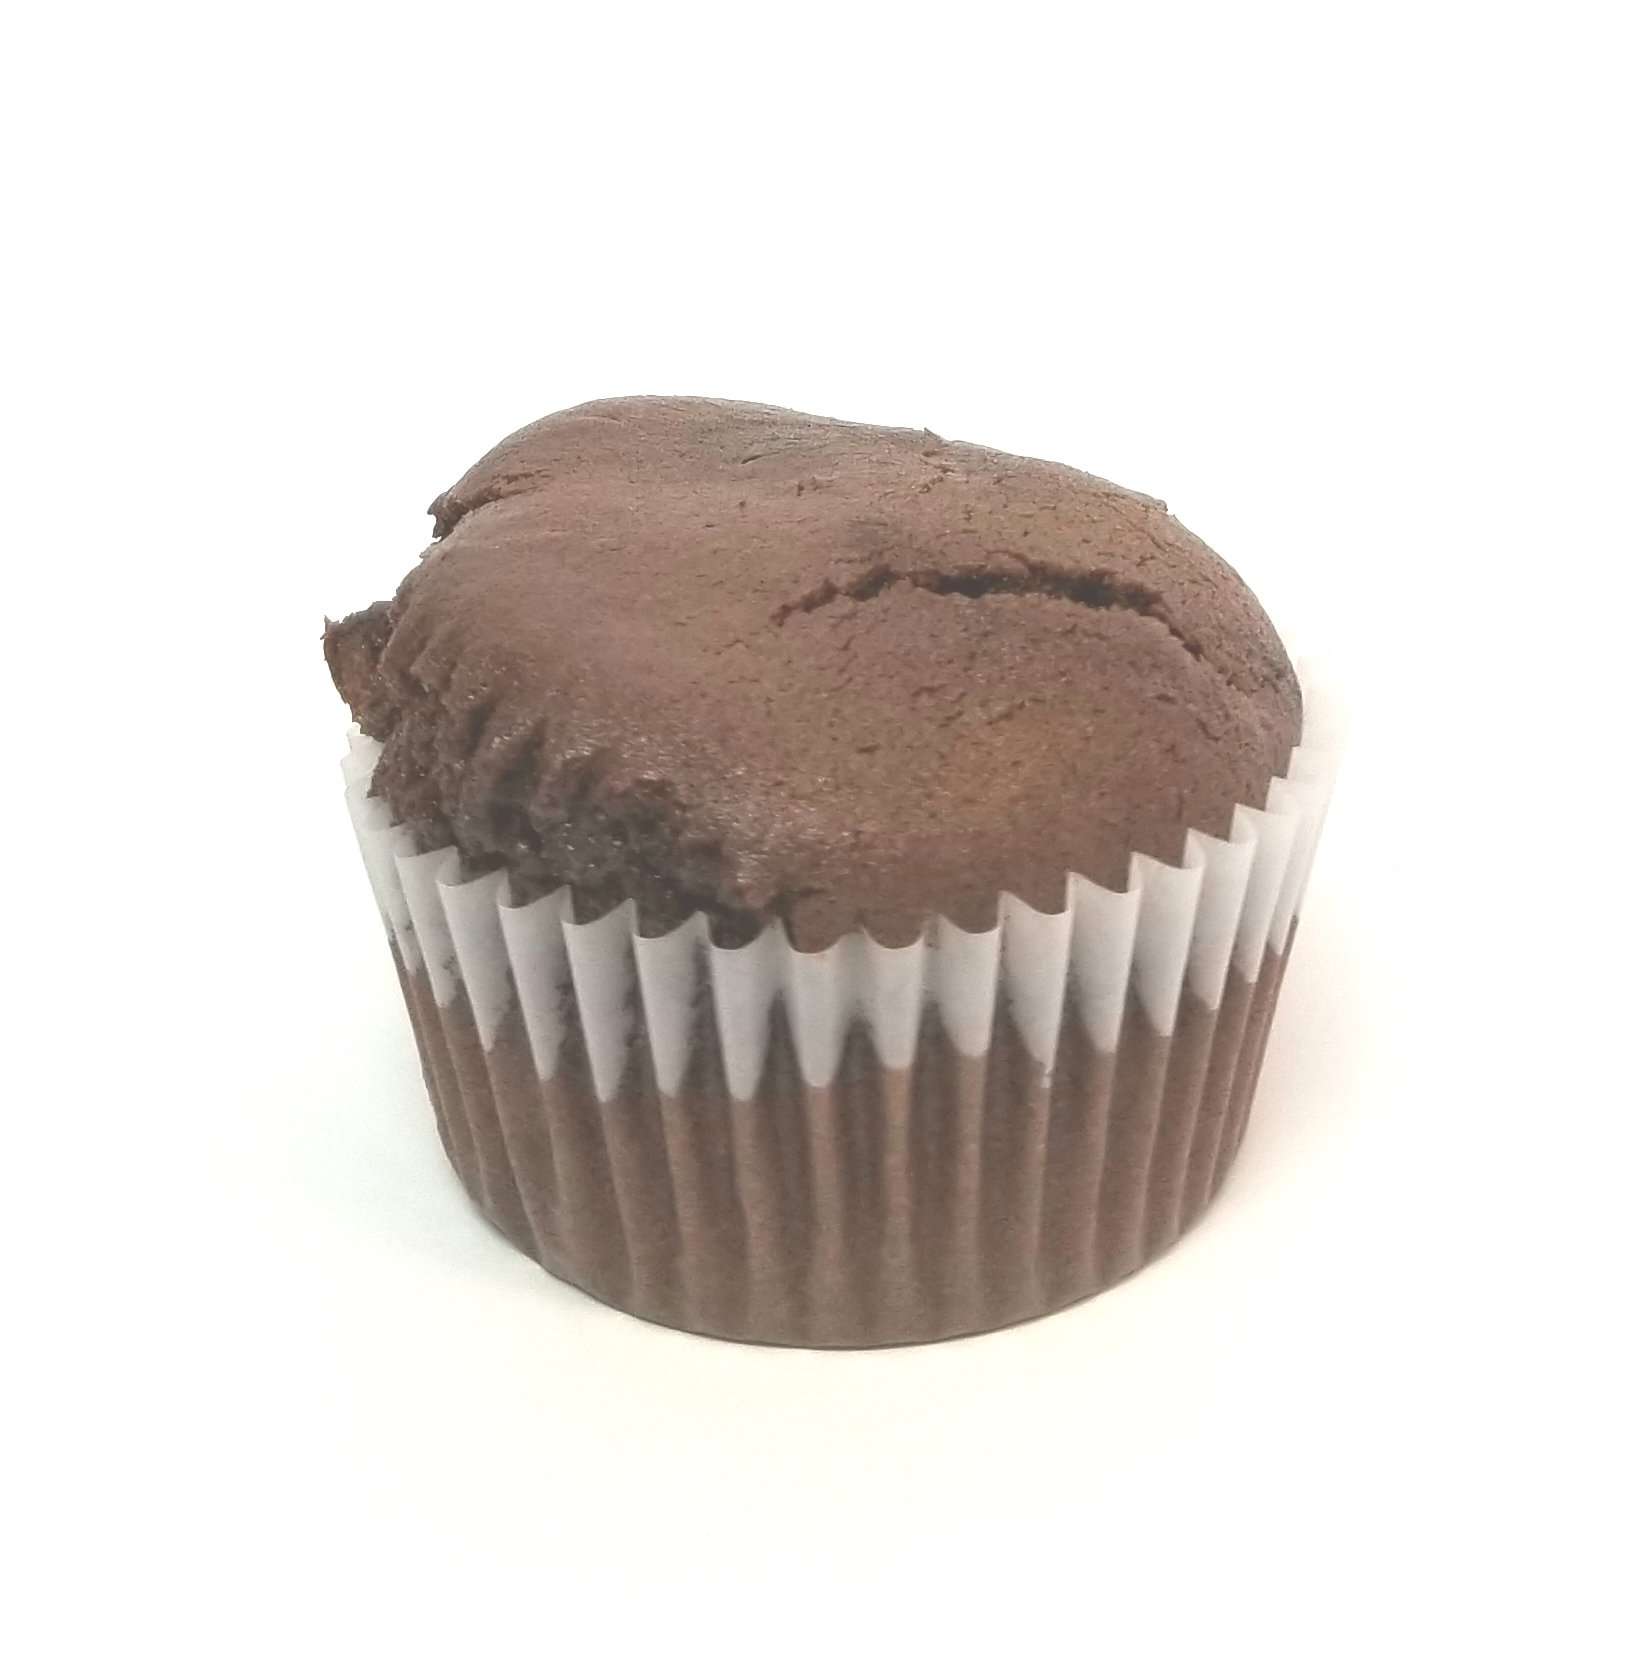 Delicious Low Carb Gluten-Free Chocolate Zucchini Muffins12 Count Value Pack by Lilee's Gourmet Bakery